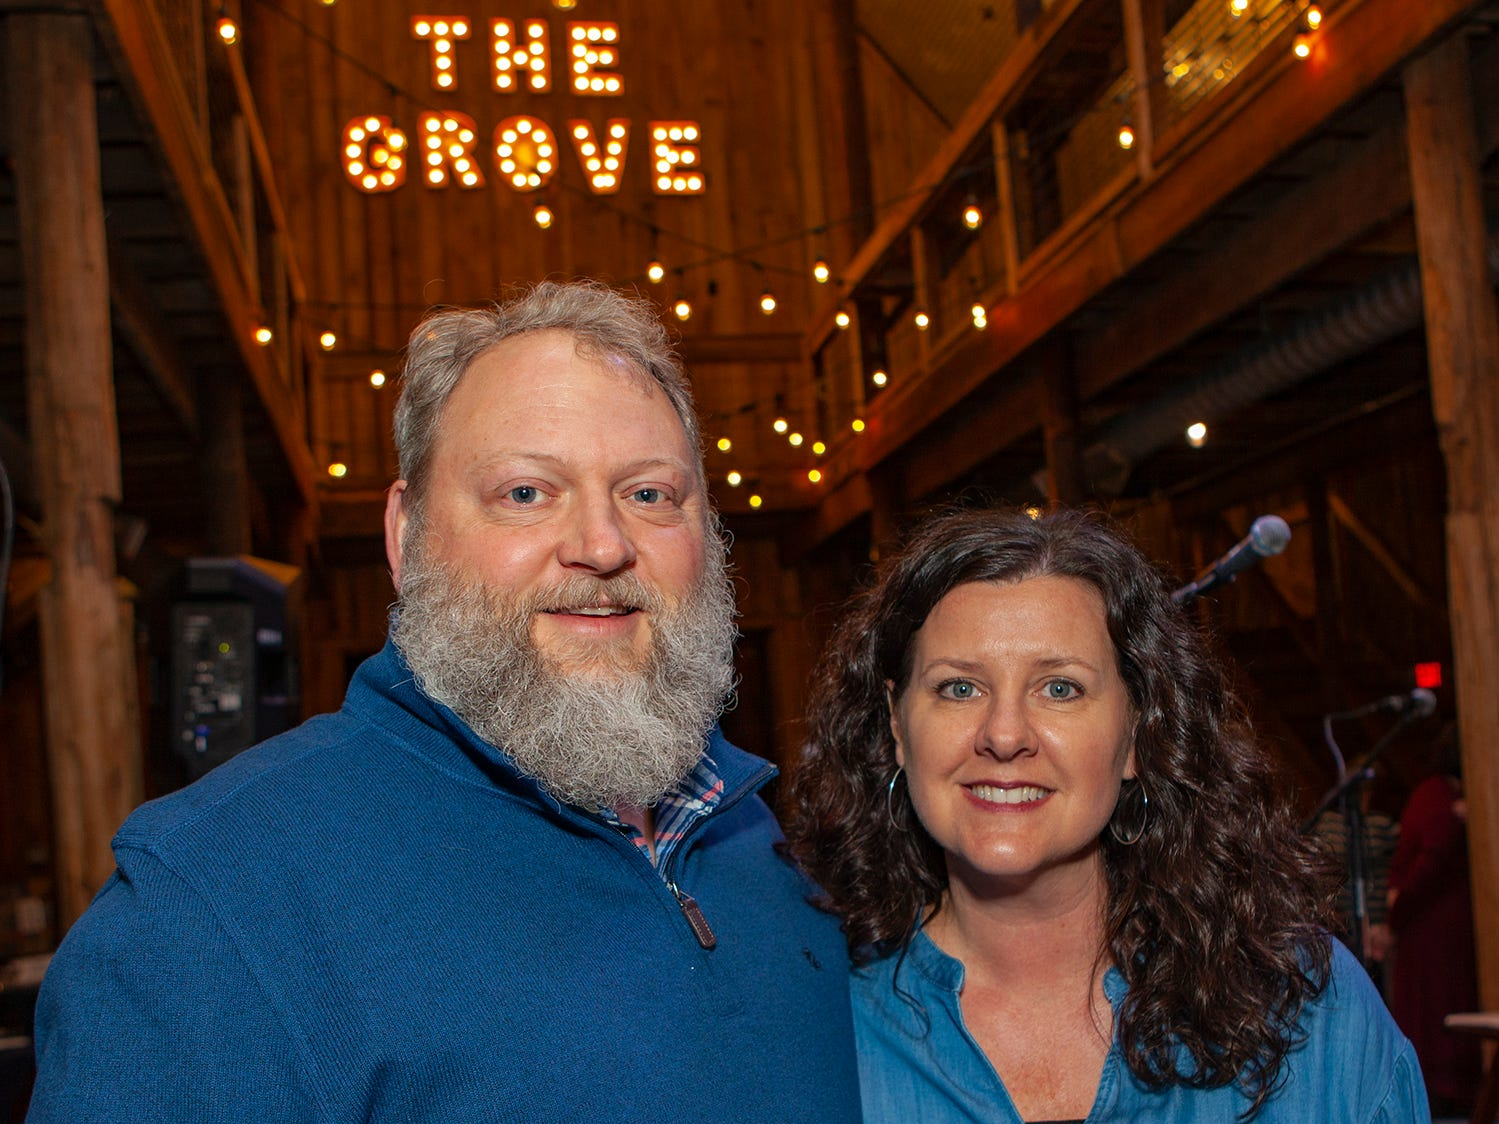 Dr. Jeremy and Dawn Harrison at the second night of Bluebird in the Boro, held March 4-6, 2019. A benefit for Alive Hospice, the event was held at The Grove at Williamson Place in Murfreesboro.